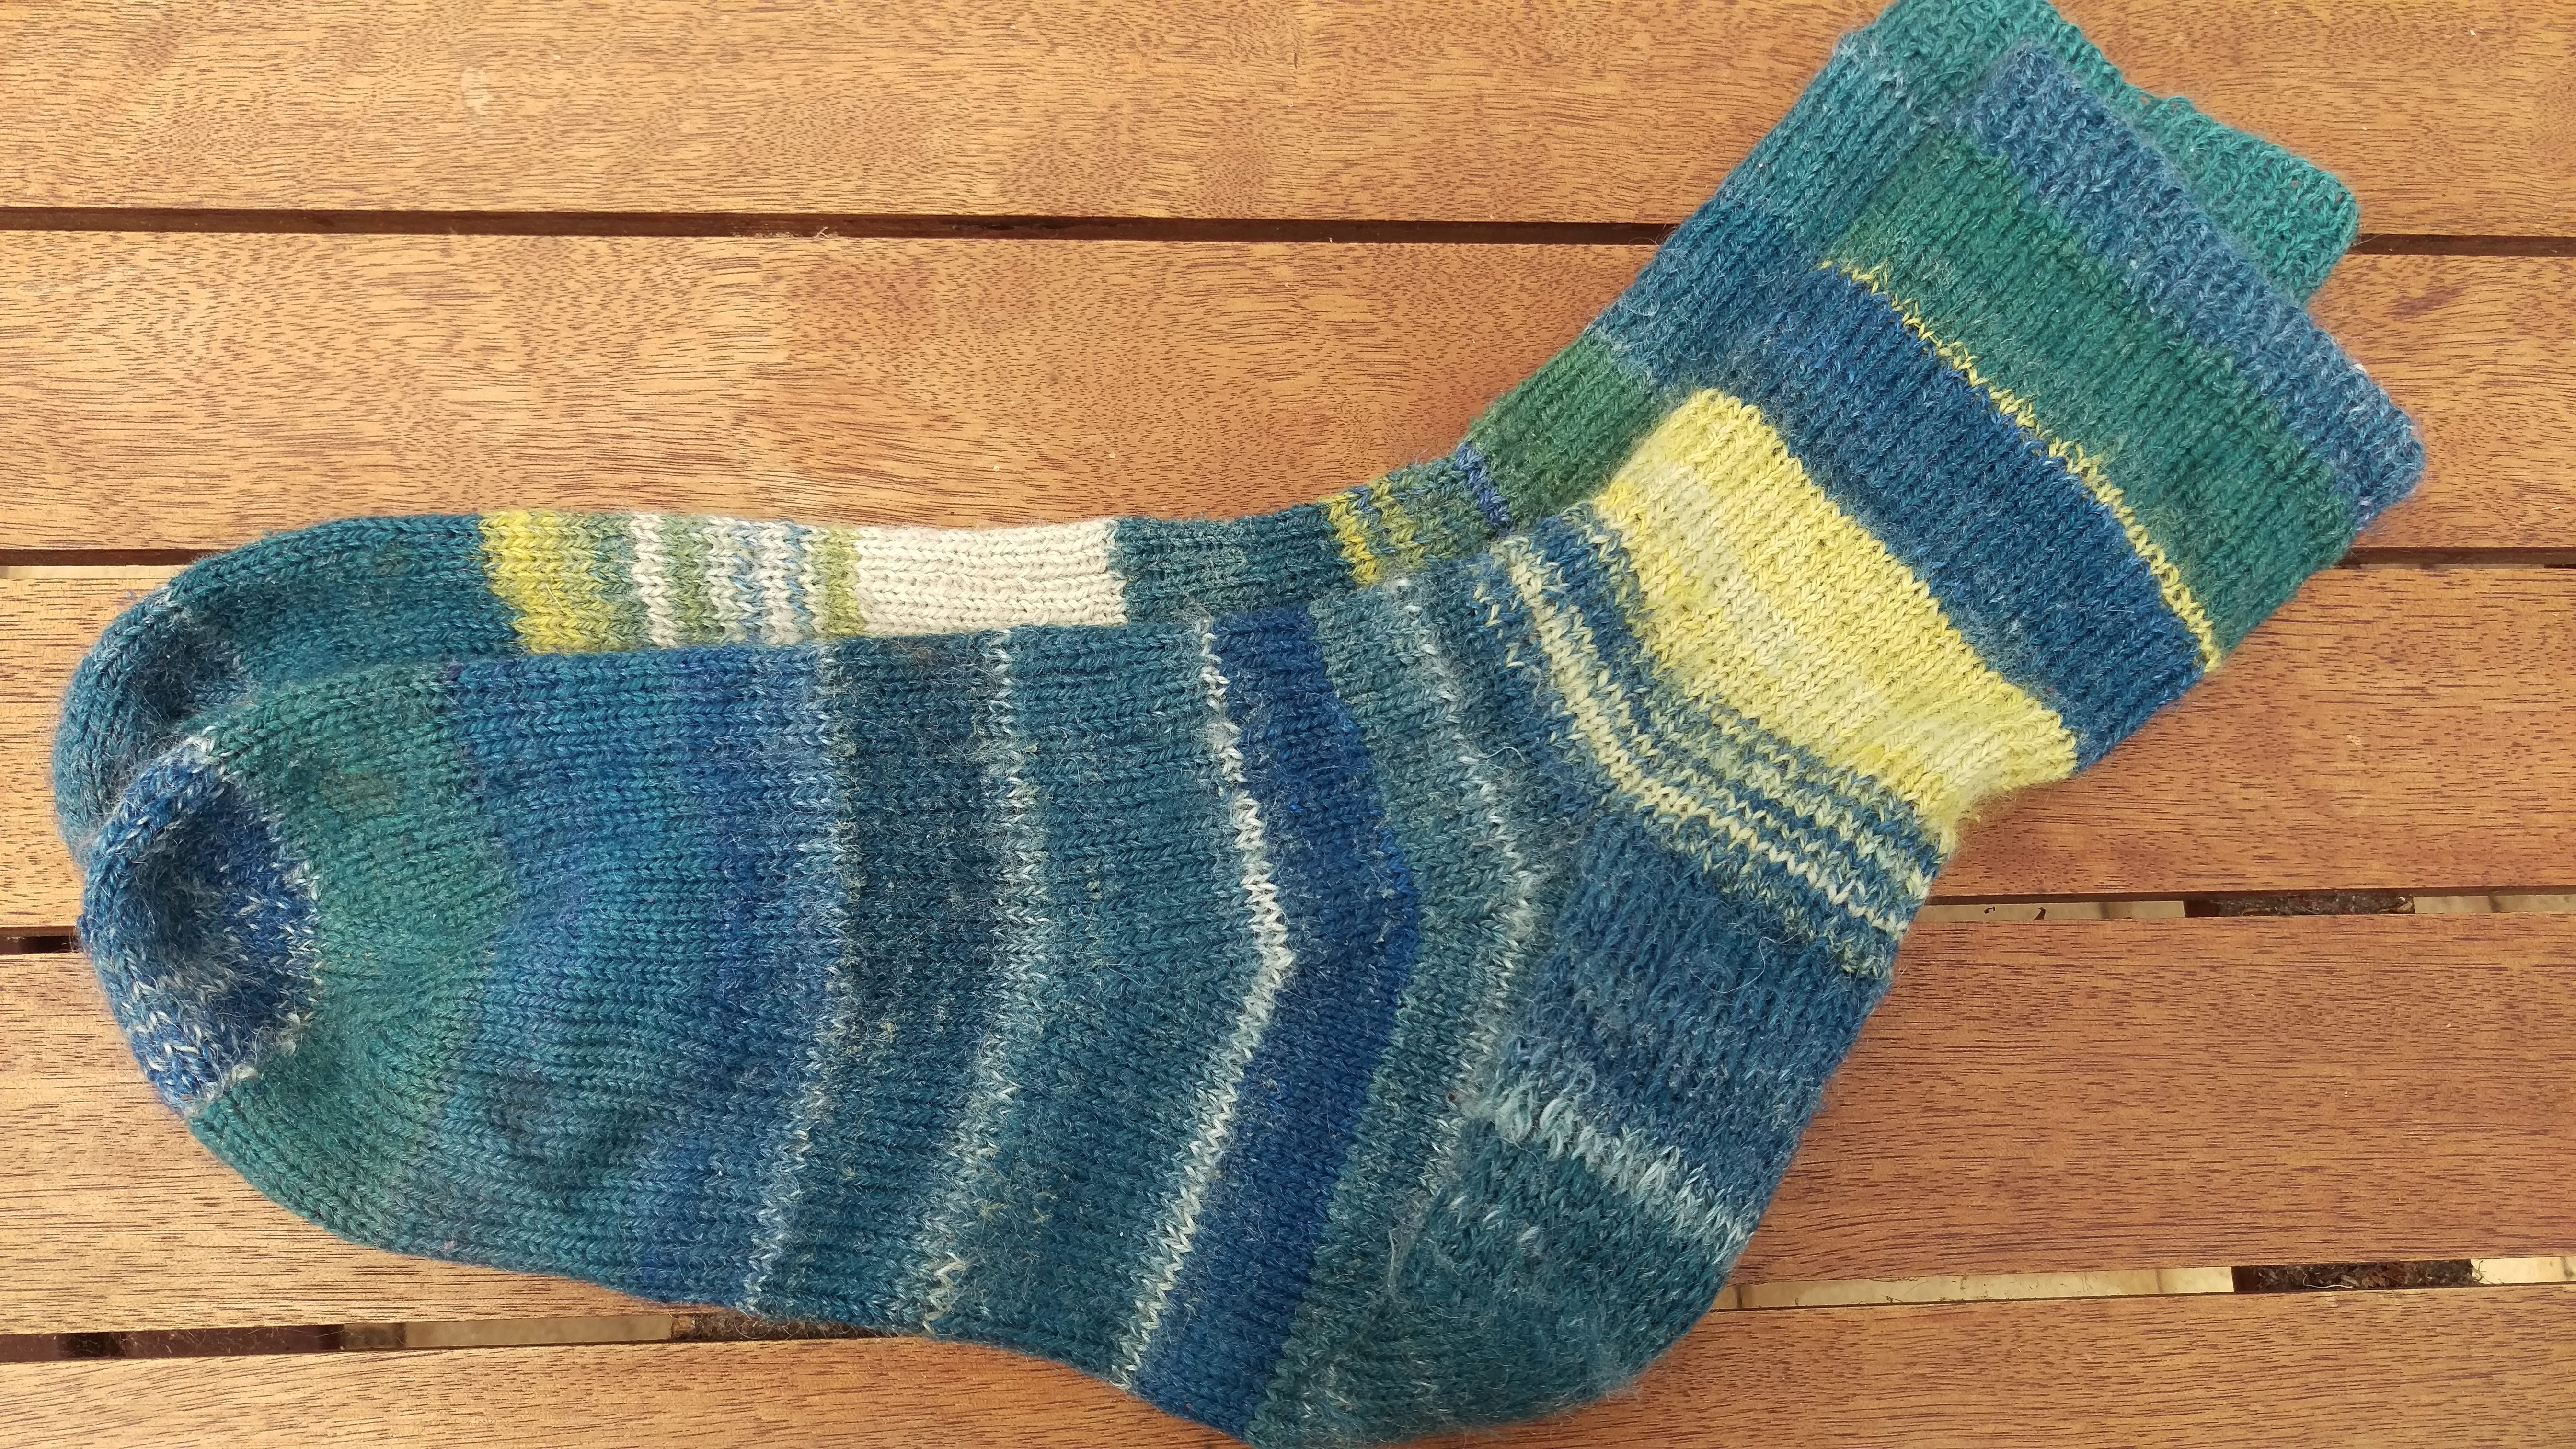 Handspun socks in use 1 & 2 PLUS Knitting in a patch | Local & Bespoke